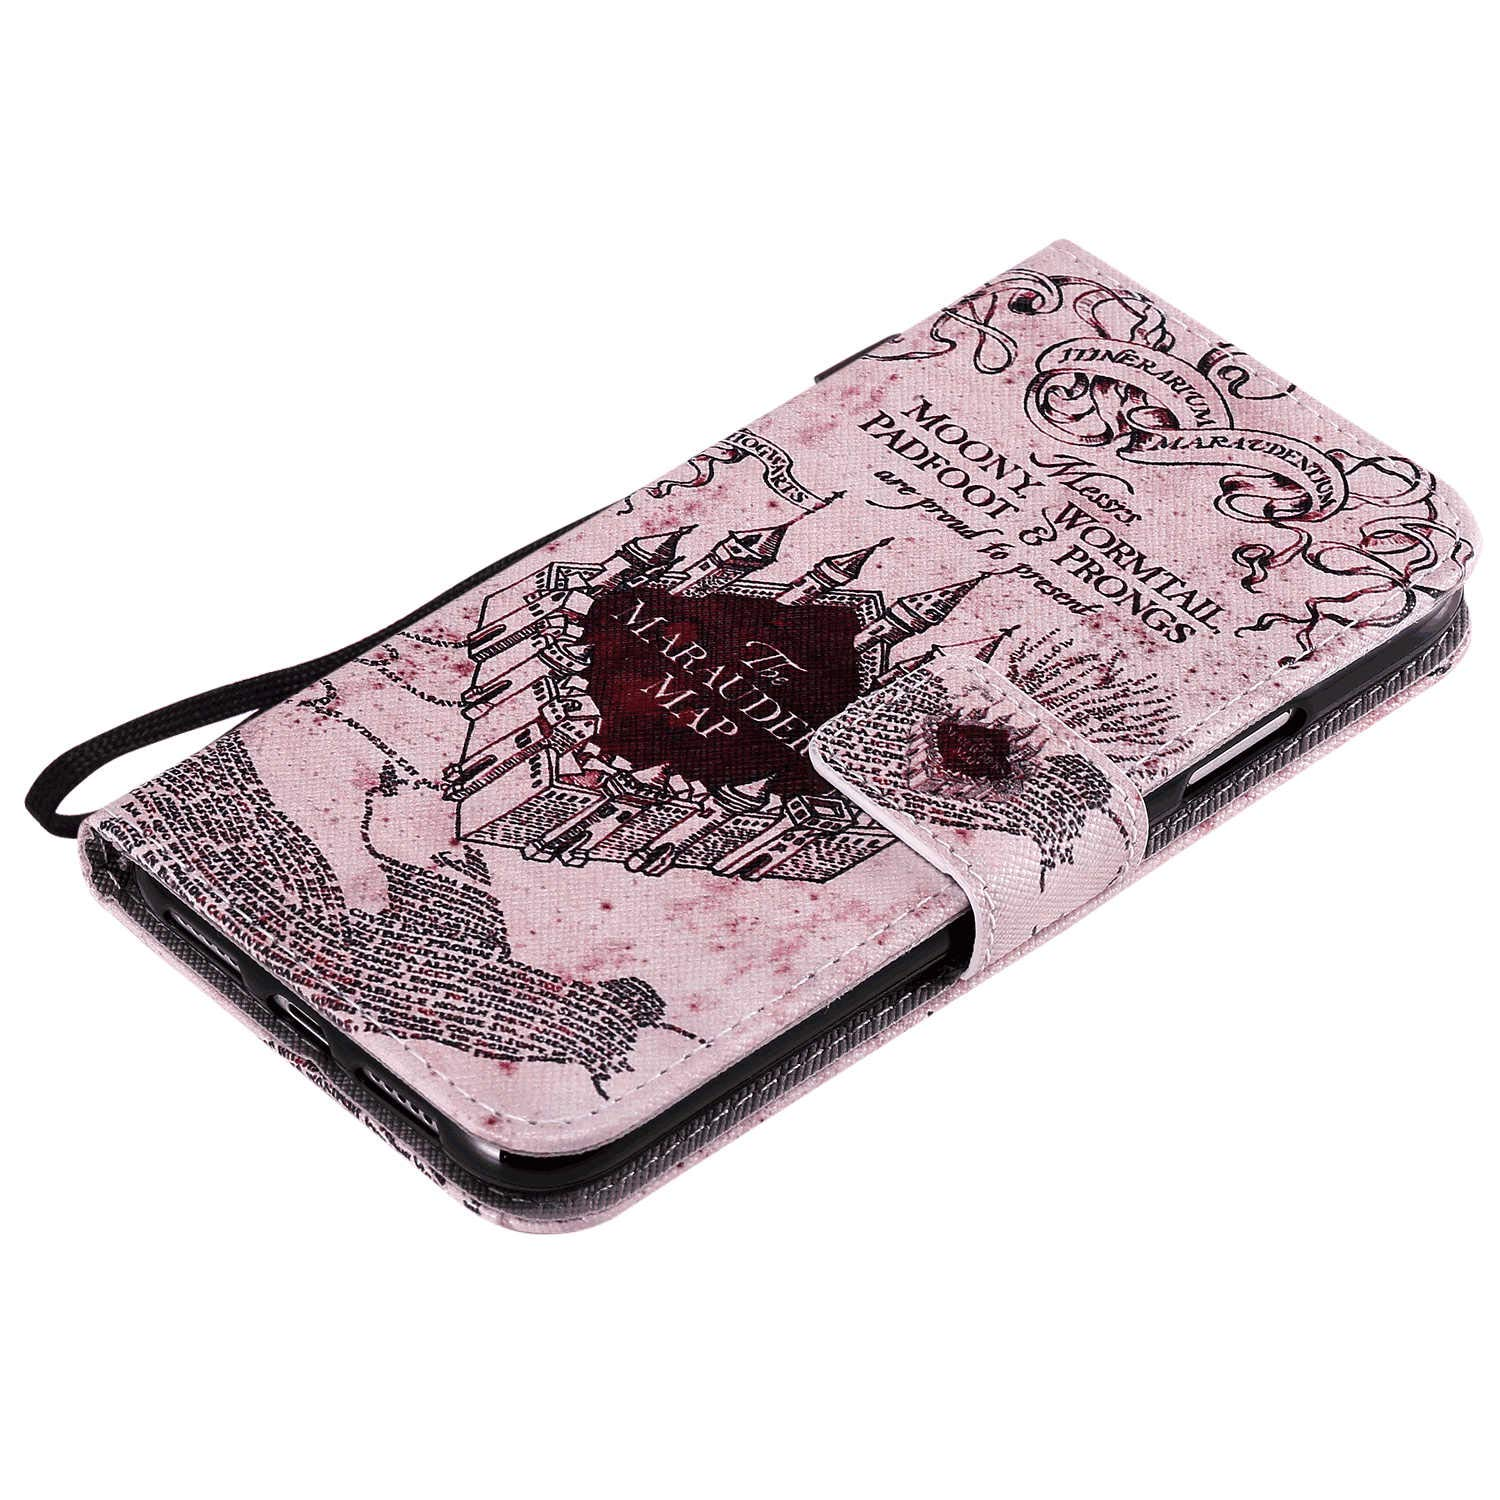 iPhone 11 Pro Flip Case Cover for iPhone 11 Pro Leather Card Holders Extra-Protective Business Wallet case Kickstand with Free Waterproof-Bag